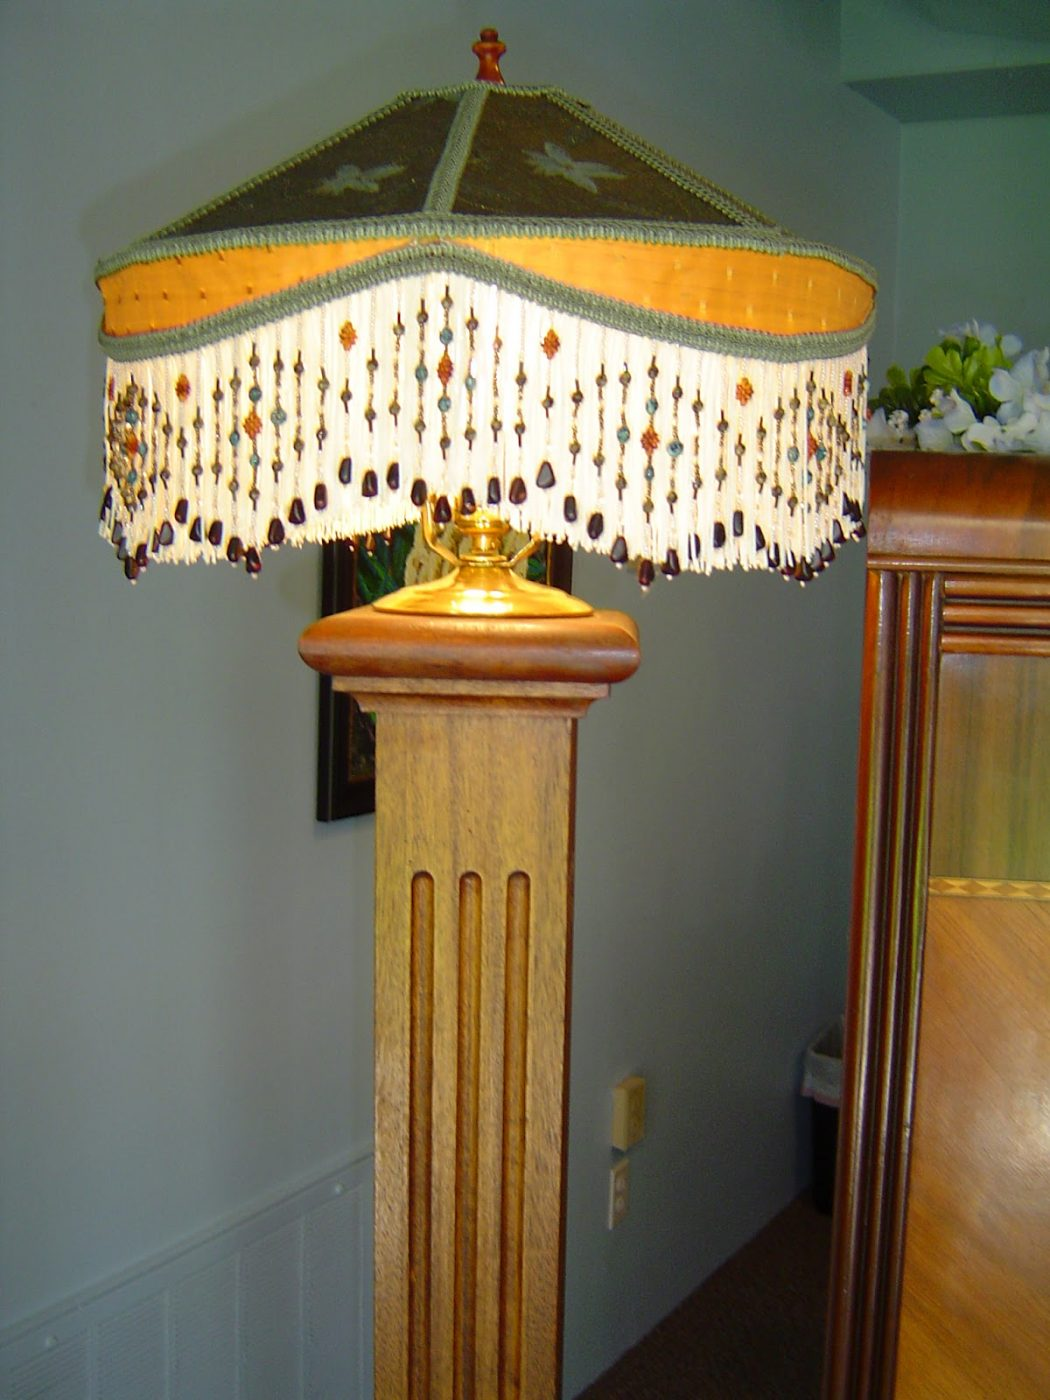 010 Do You Like To Have A handmade Wooden Lamp?